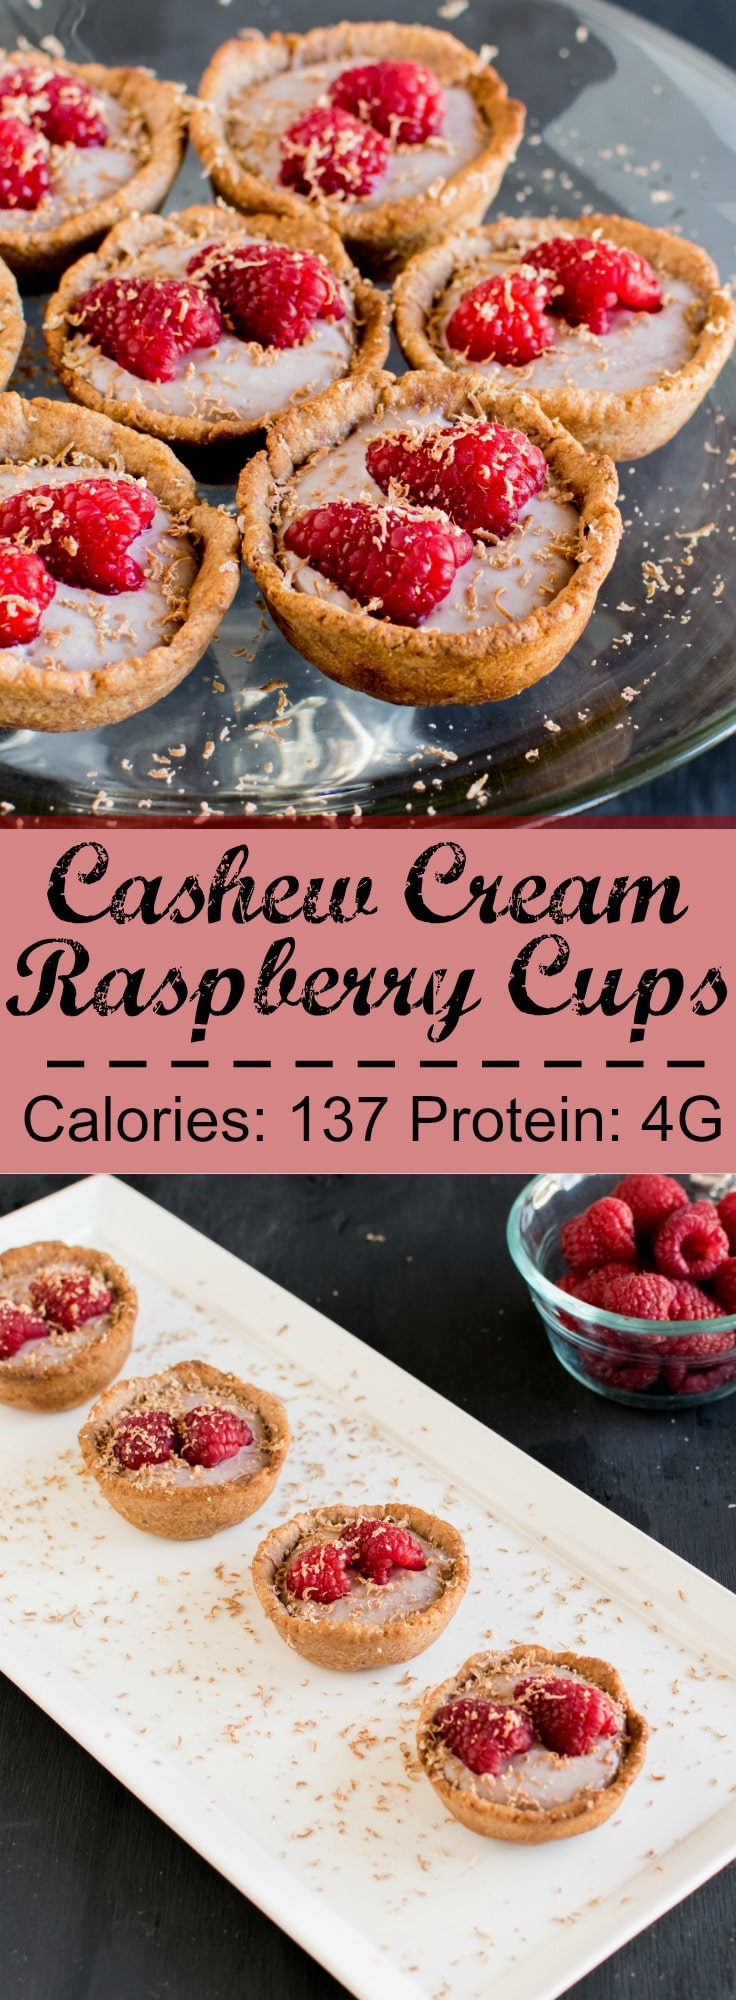 Cashew Cream Raspberry Cups - vegan delight for the valentine's day made with fresh and natural ingredients, mildly sweet and healthy indulgent, ready in only 25 minutes | kiipfit.com